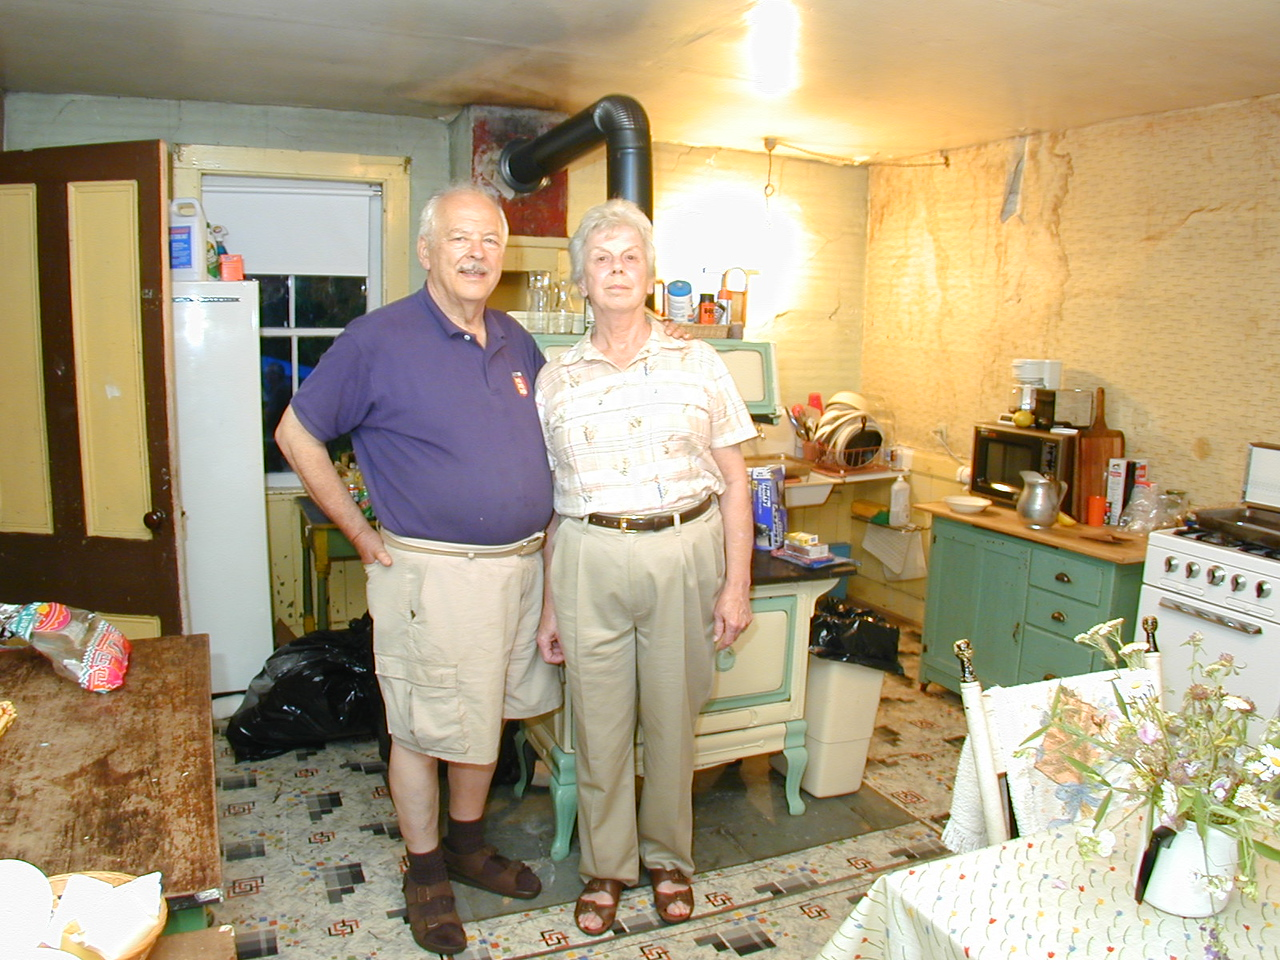 Mr. and Mrs. James F. O'Brien Jr. at the cottage